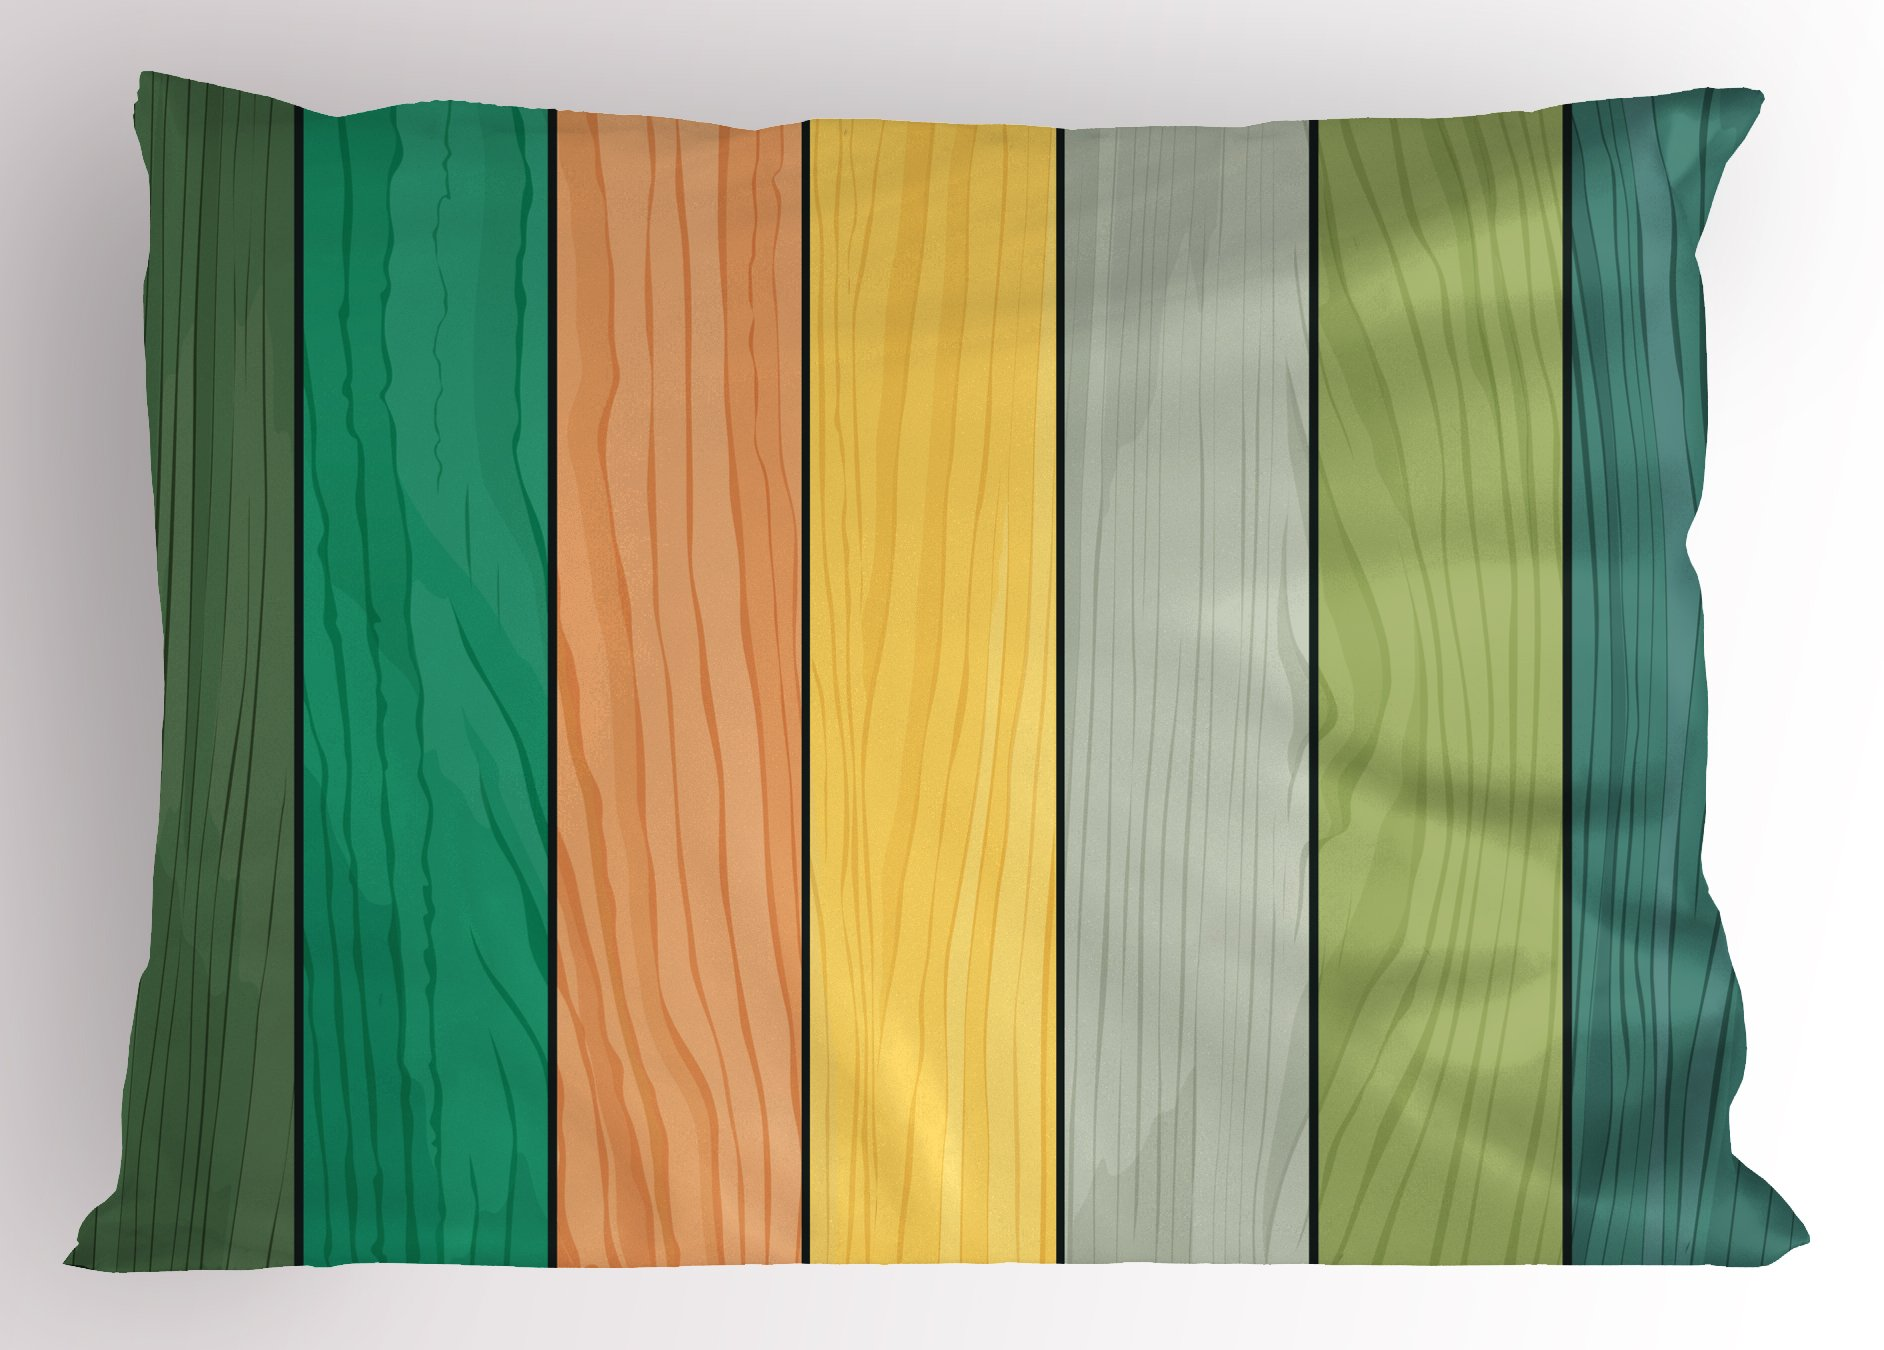 Lunarable Colorful Pillow Sham, Realistic Wood Texture Pattern on Colorful Stripes Timber Structure Detail Image, Decorative Standard Queen Size Printed Pillowcase, 30 X 20 inches, Multicolor by Lunarable (Image #1)